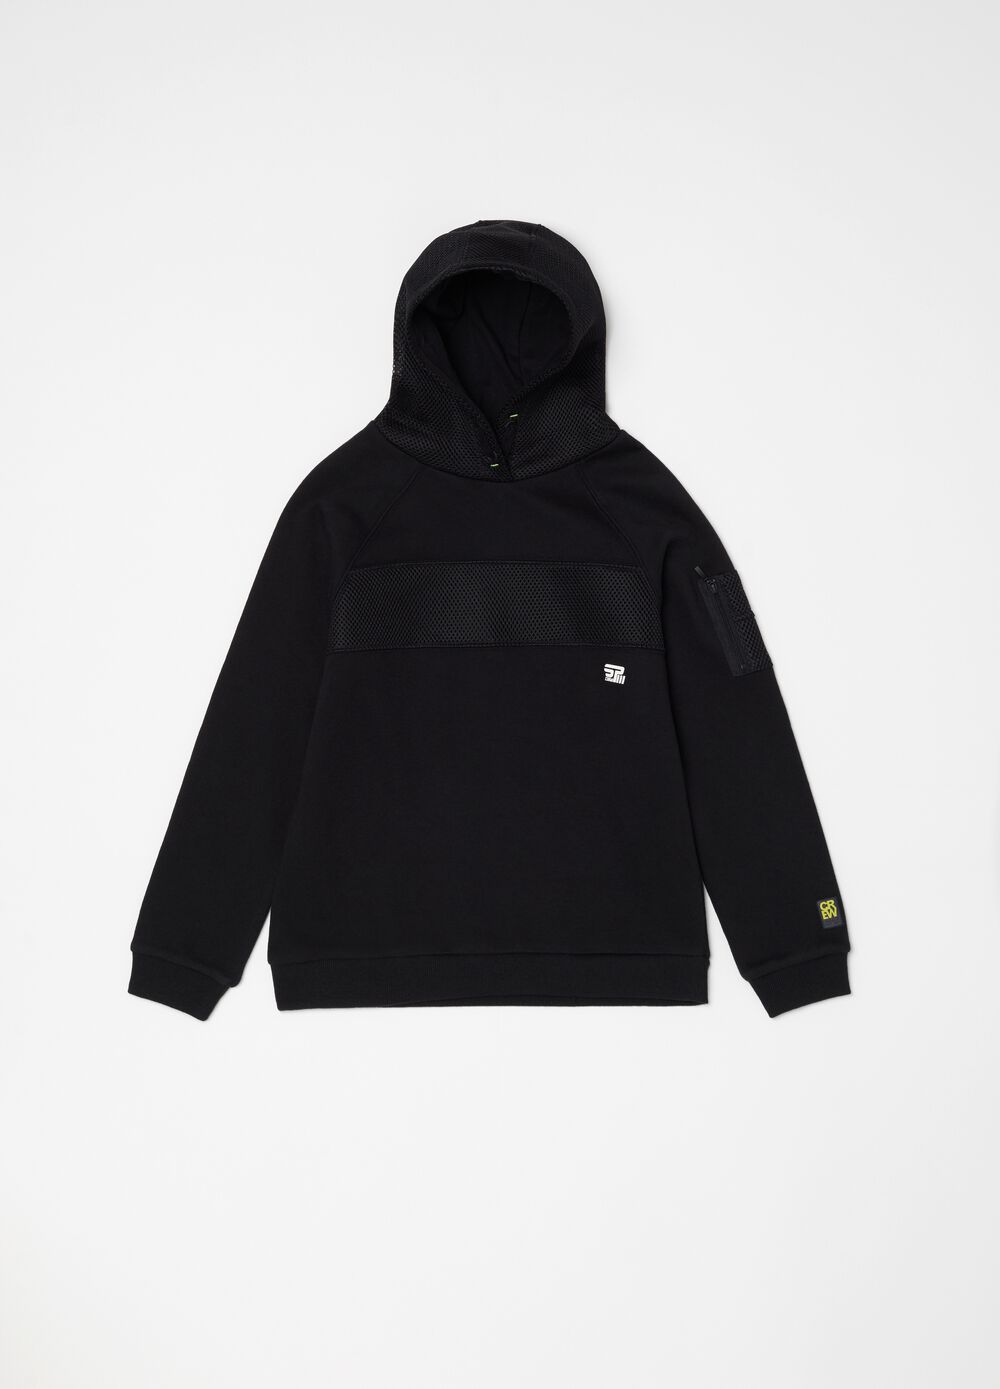 Solid colour sweatshirt with hood and round neck